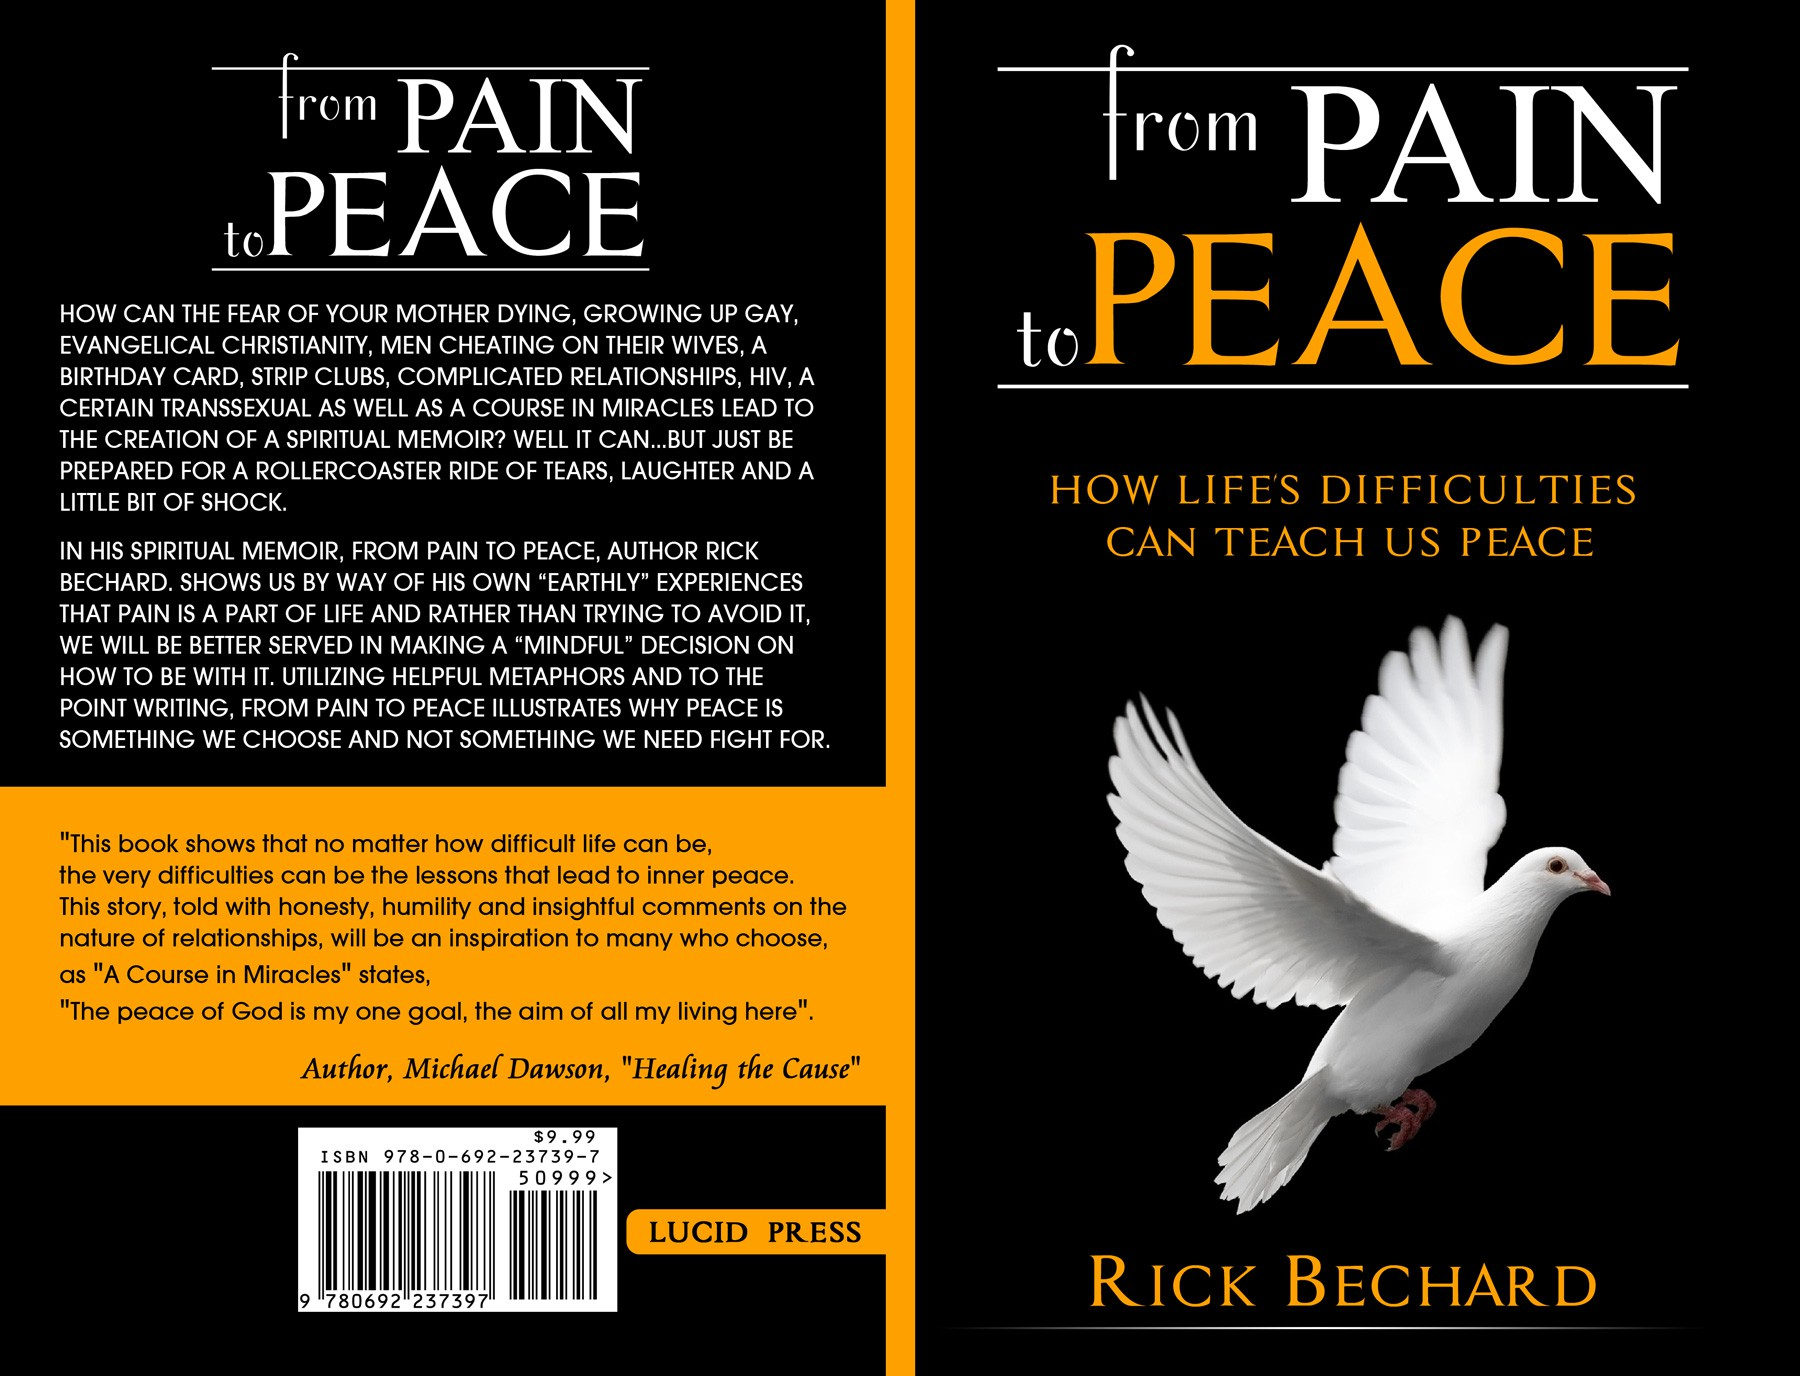 If you are interested in real life issues, spiritual issues, perhaps the text, A Course In Miracles